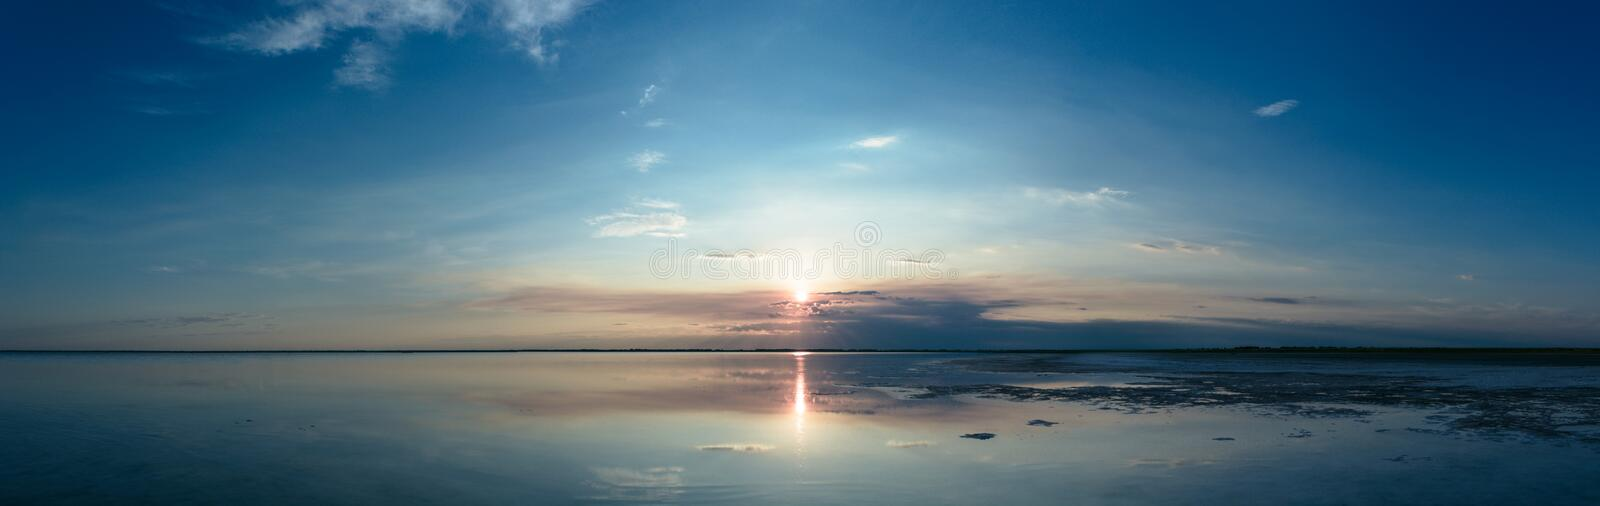 The serene landscape of the lake and the sky reflected in the water stock images